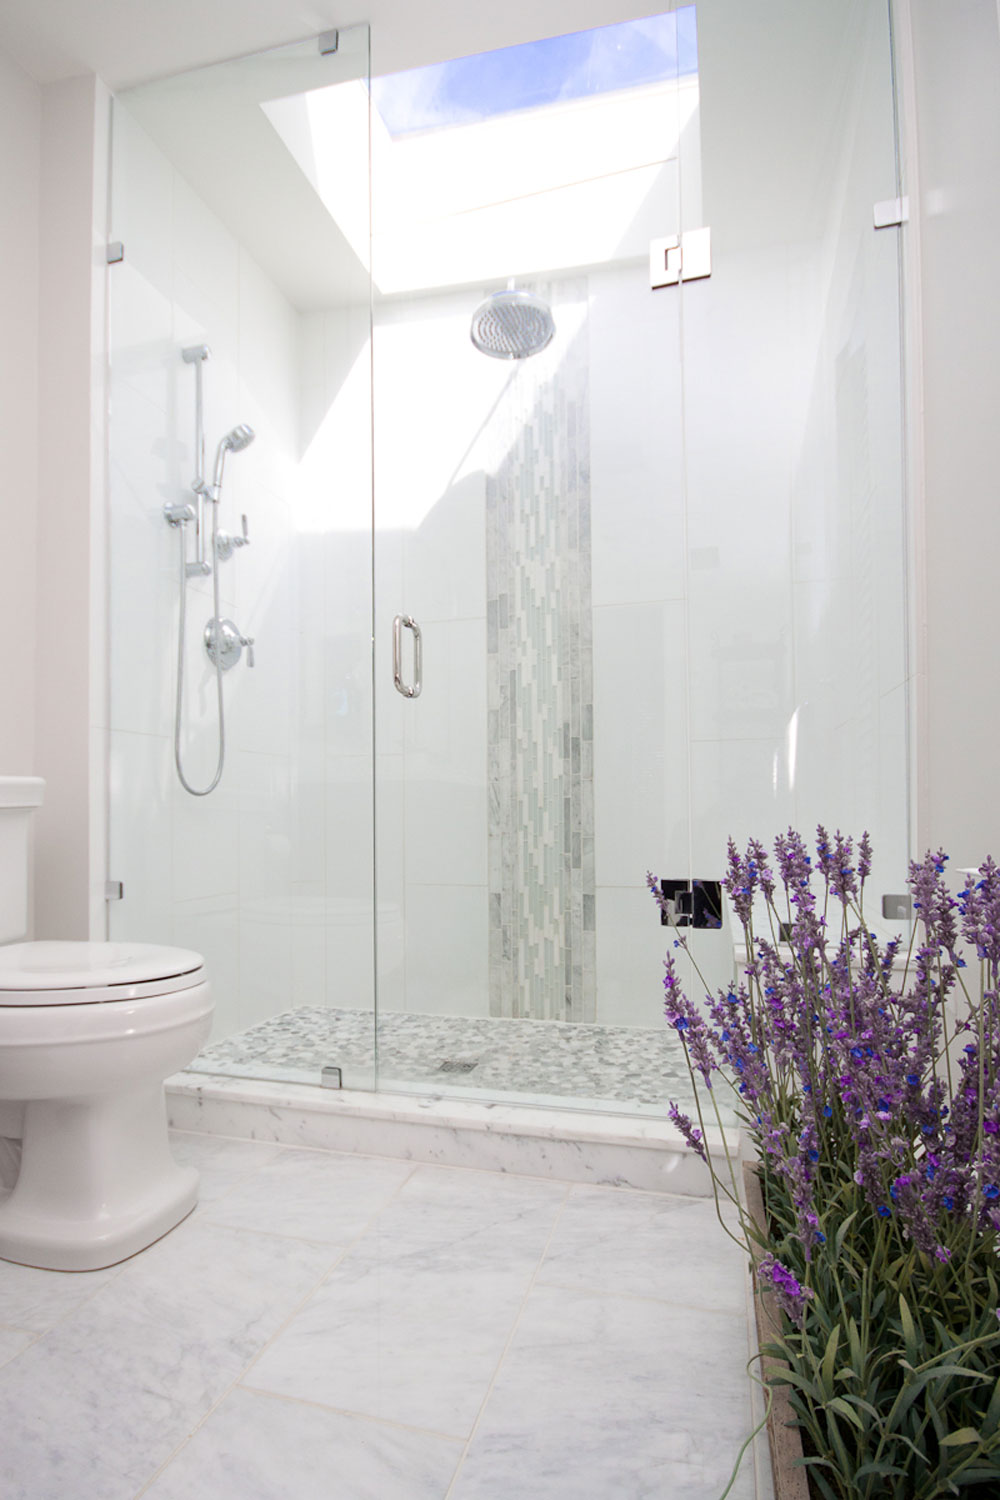 Bathrooms-with-skylights-that-make-you-reconsider-how-you-rec-recreate-12-bathrooms-with-skylights that make you reconsider how you design them